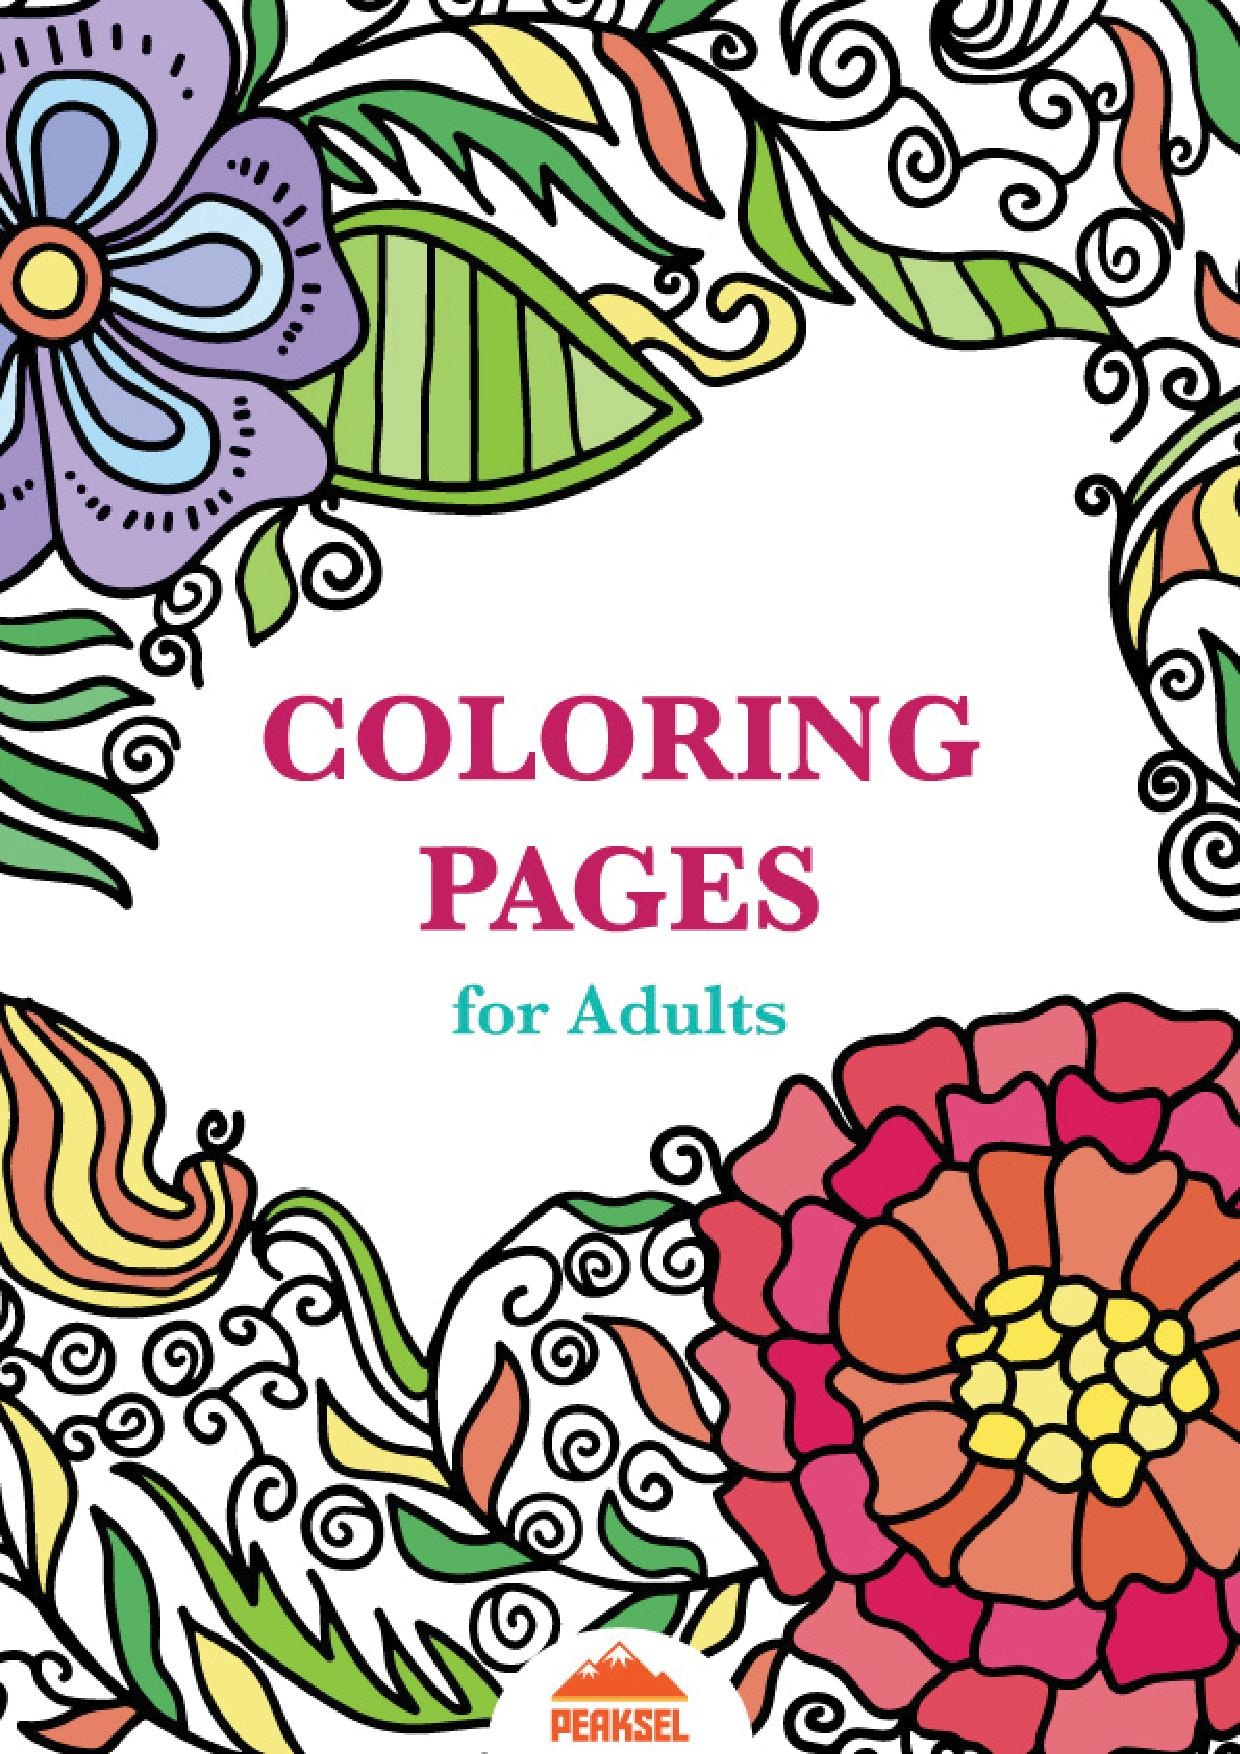 File:Printable Coloring Pages for Adults - Free Adult Coloring Book ...